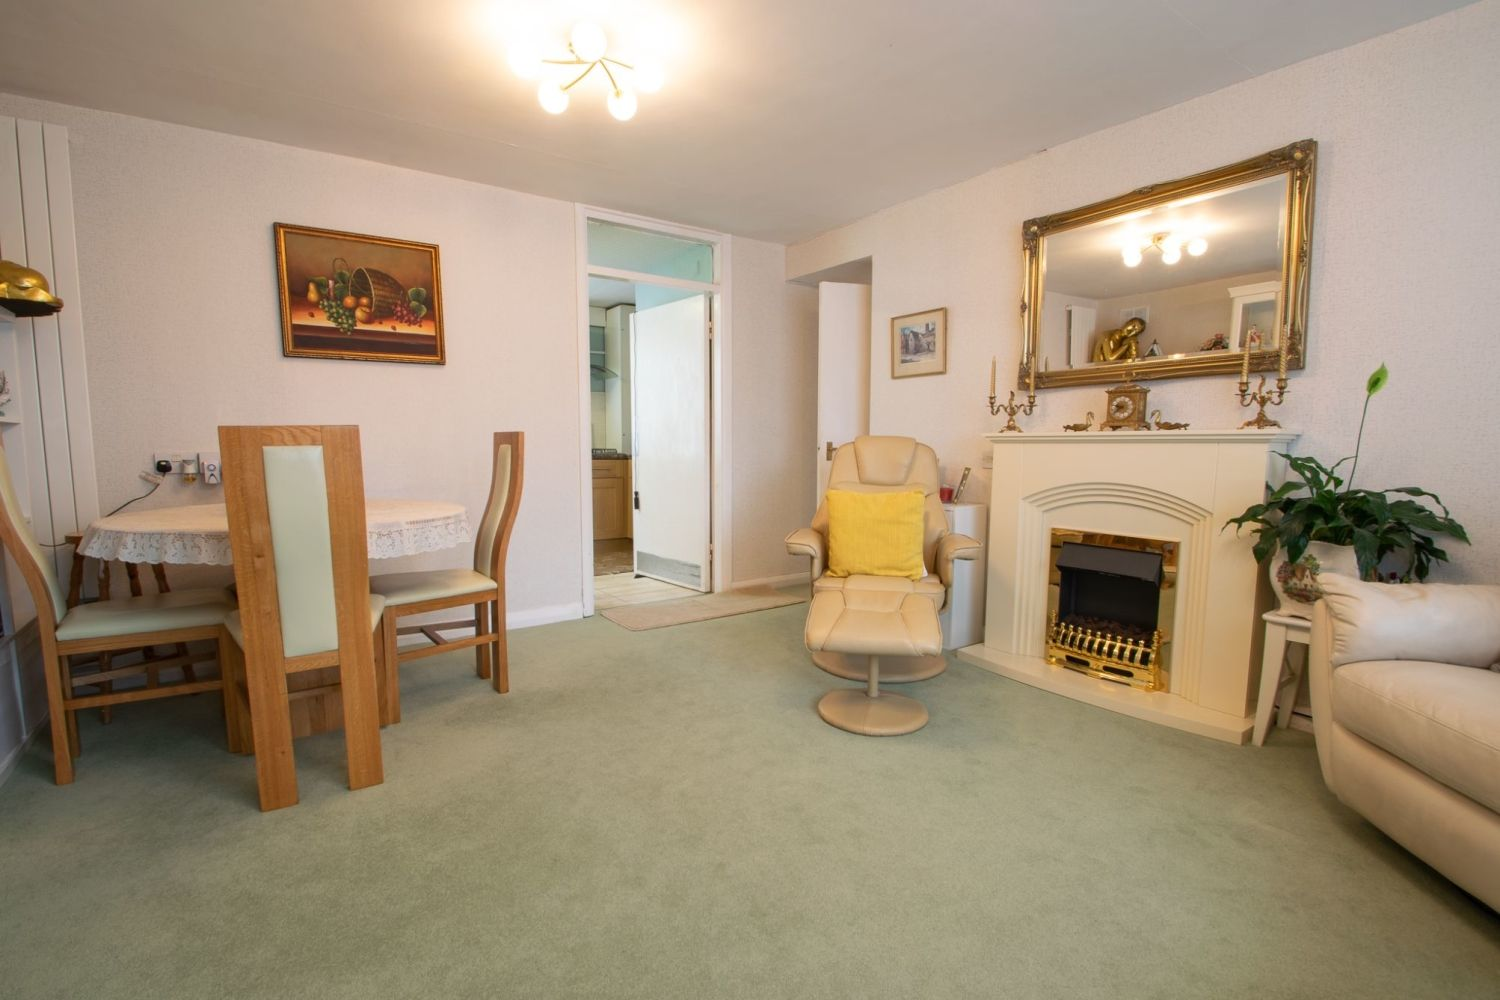 2 bed flat for sale in Enville Street, Stourbridge Central  - Property Image 3